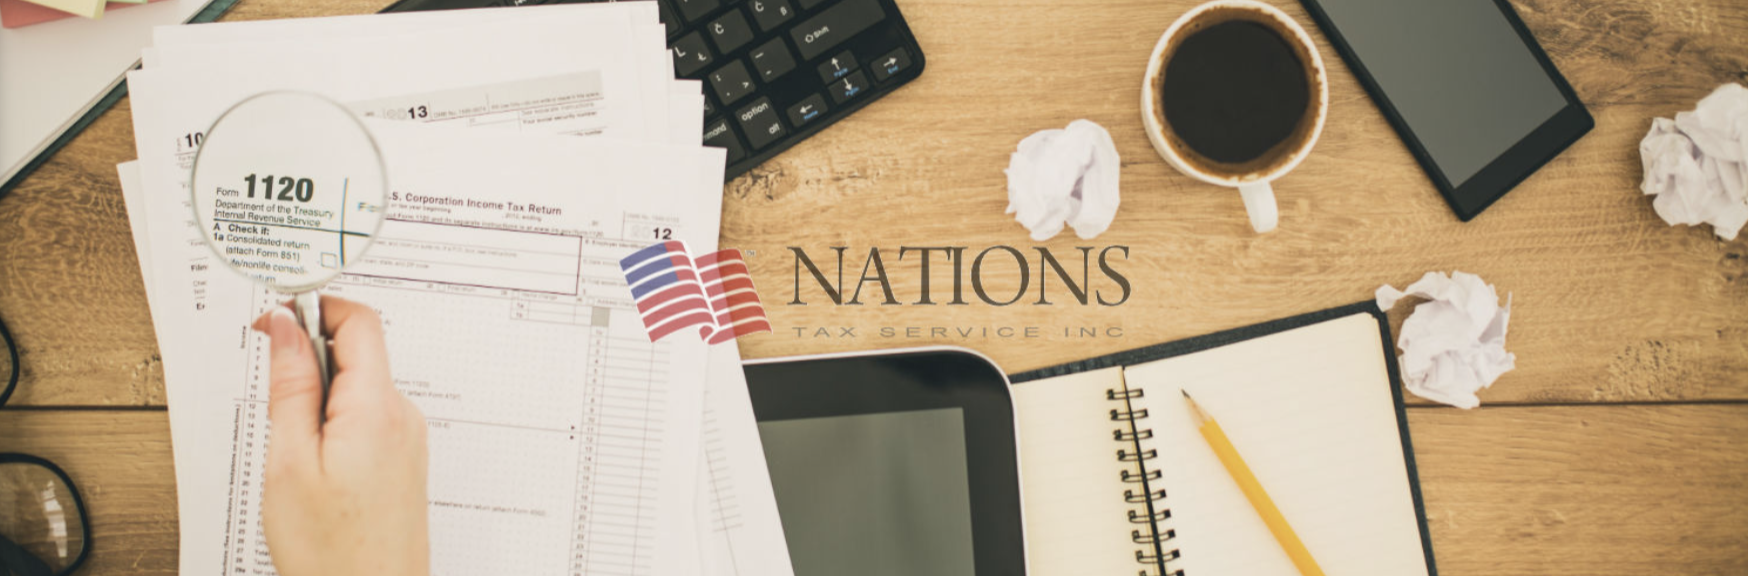 Nations Tax Service, Inc. image 0